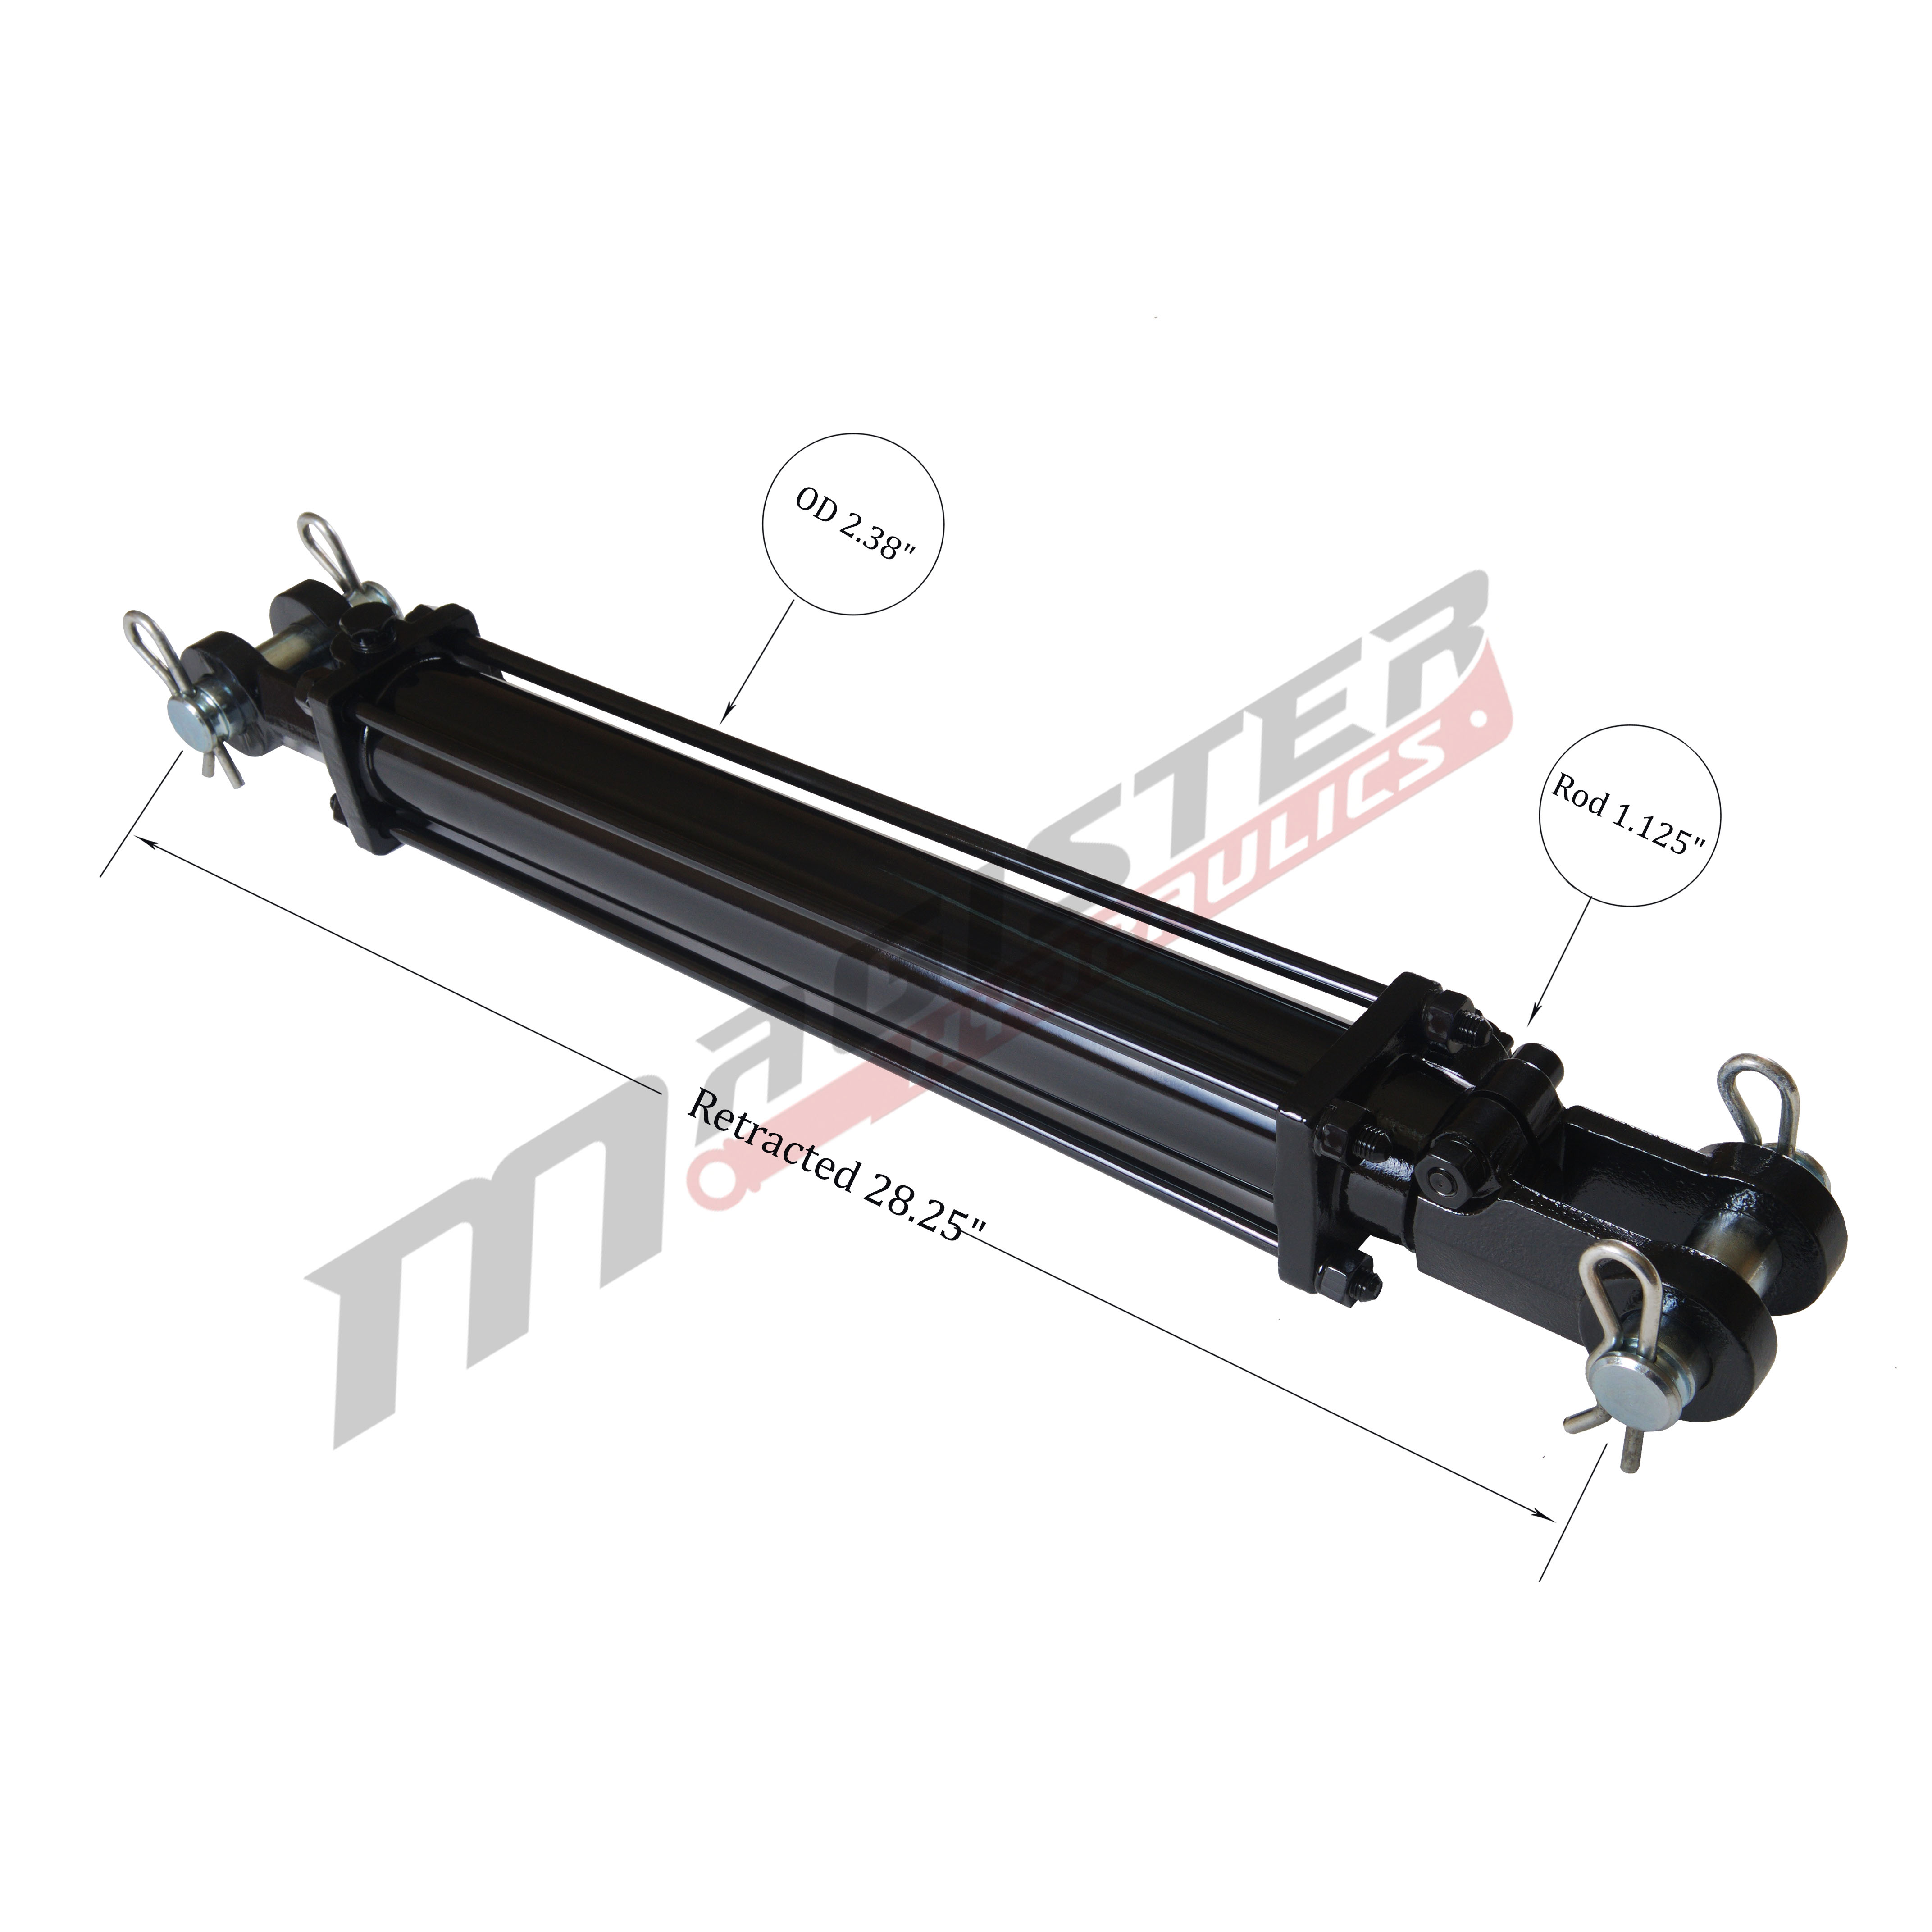 2 bore x 18 stroke hydraulic cylinder, tie rod double acting cylinder | Magister Hydraulics